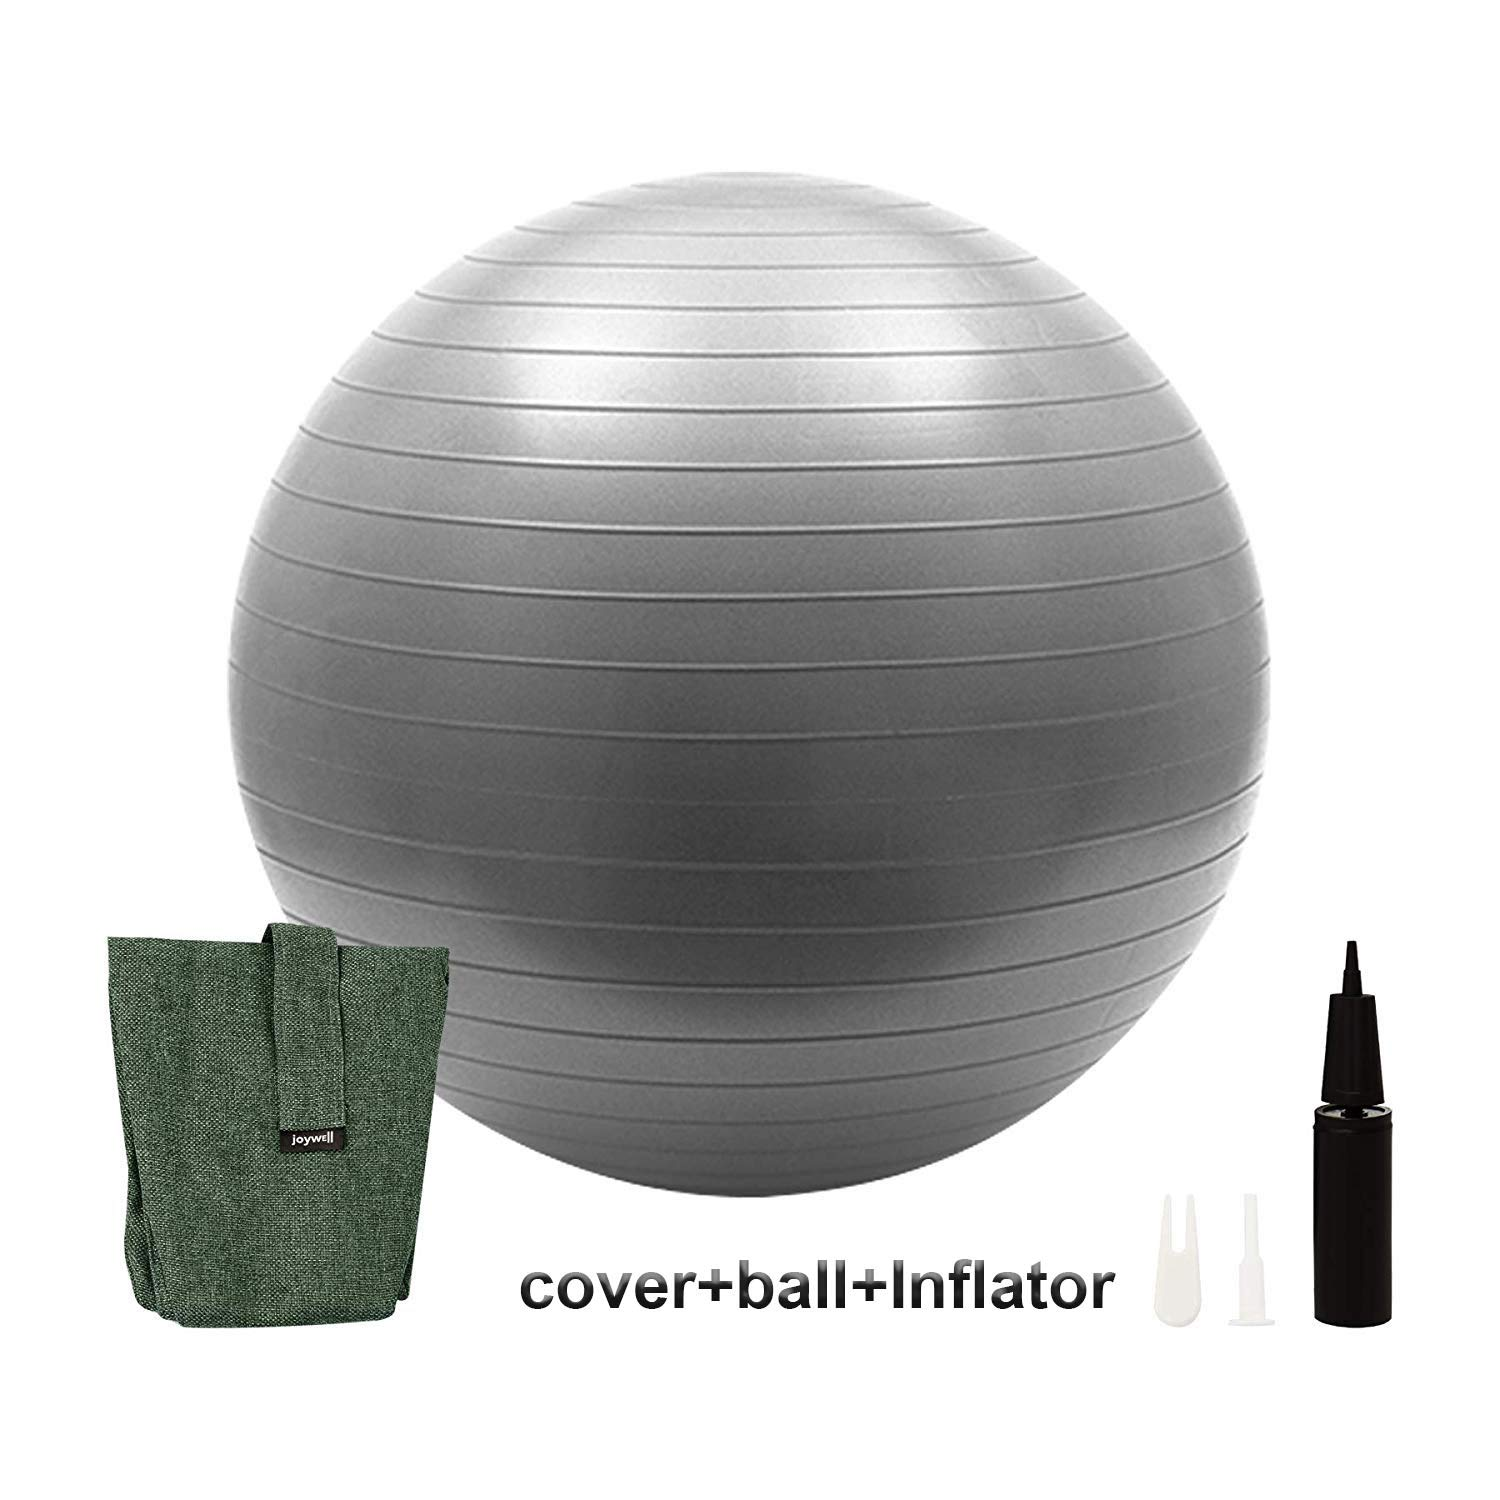 Joywell Exercise Ball Chair with Multifunctional Cover Included Hand Pump, Yoga Fitness Stability Base, Sitting Ball Chair for Office Home Indoor Outdoor (65CM, Army Green) by Joywell